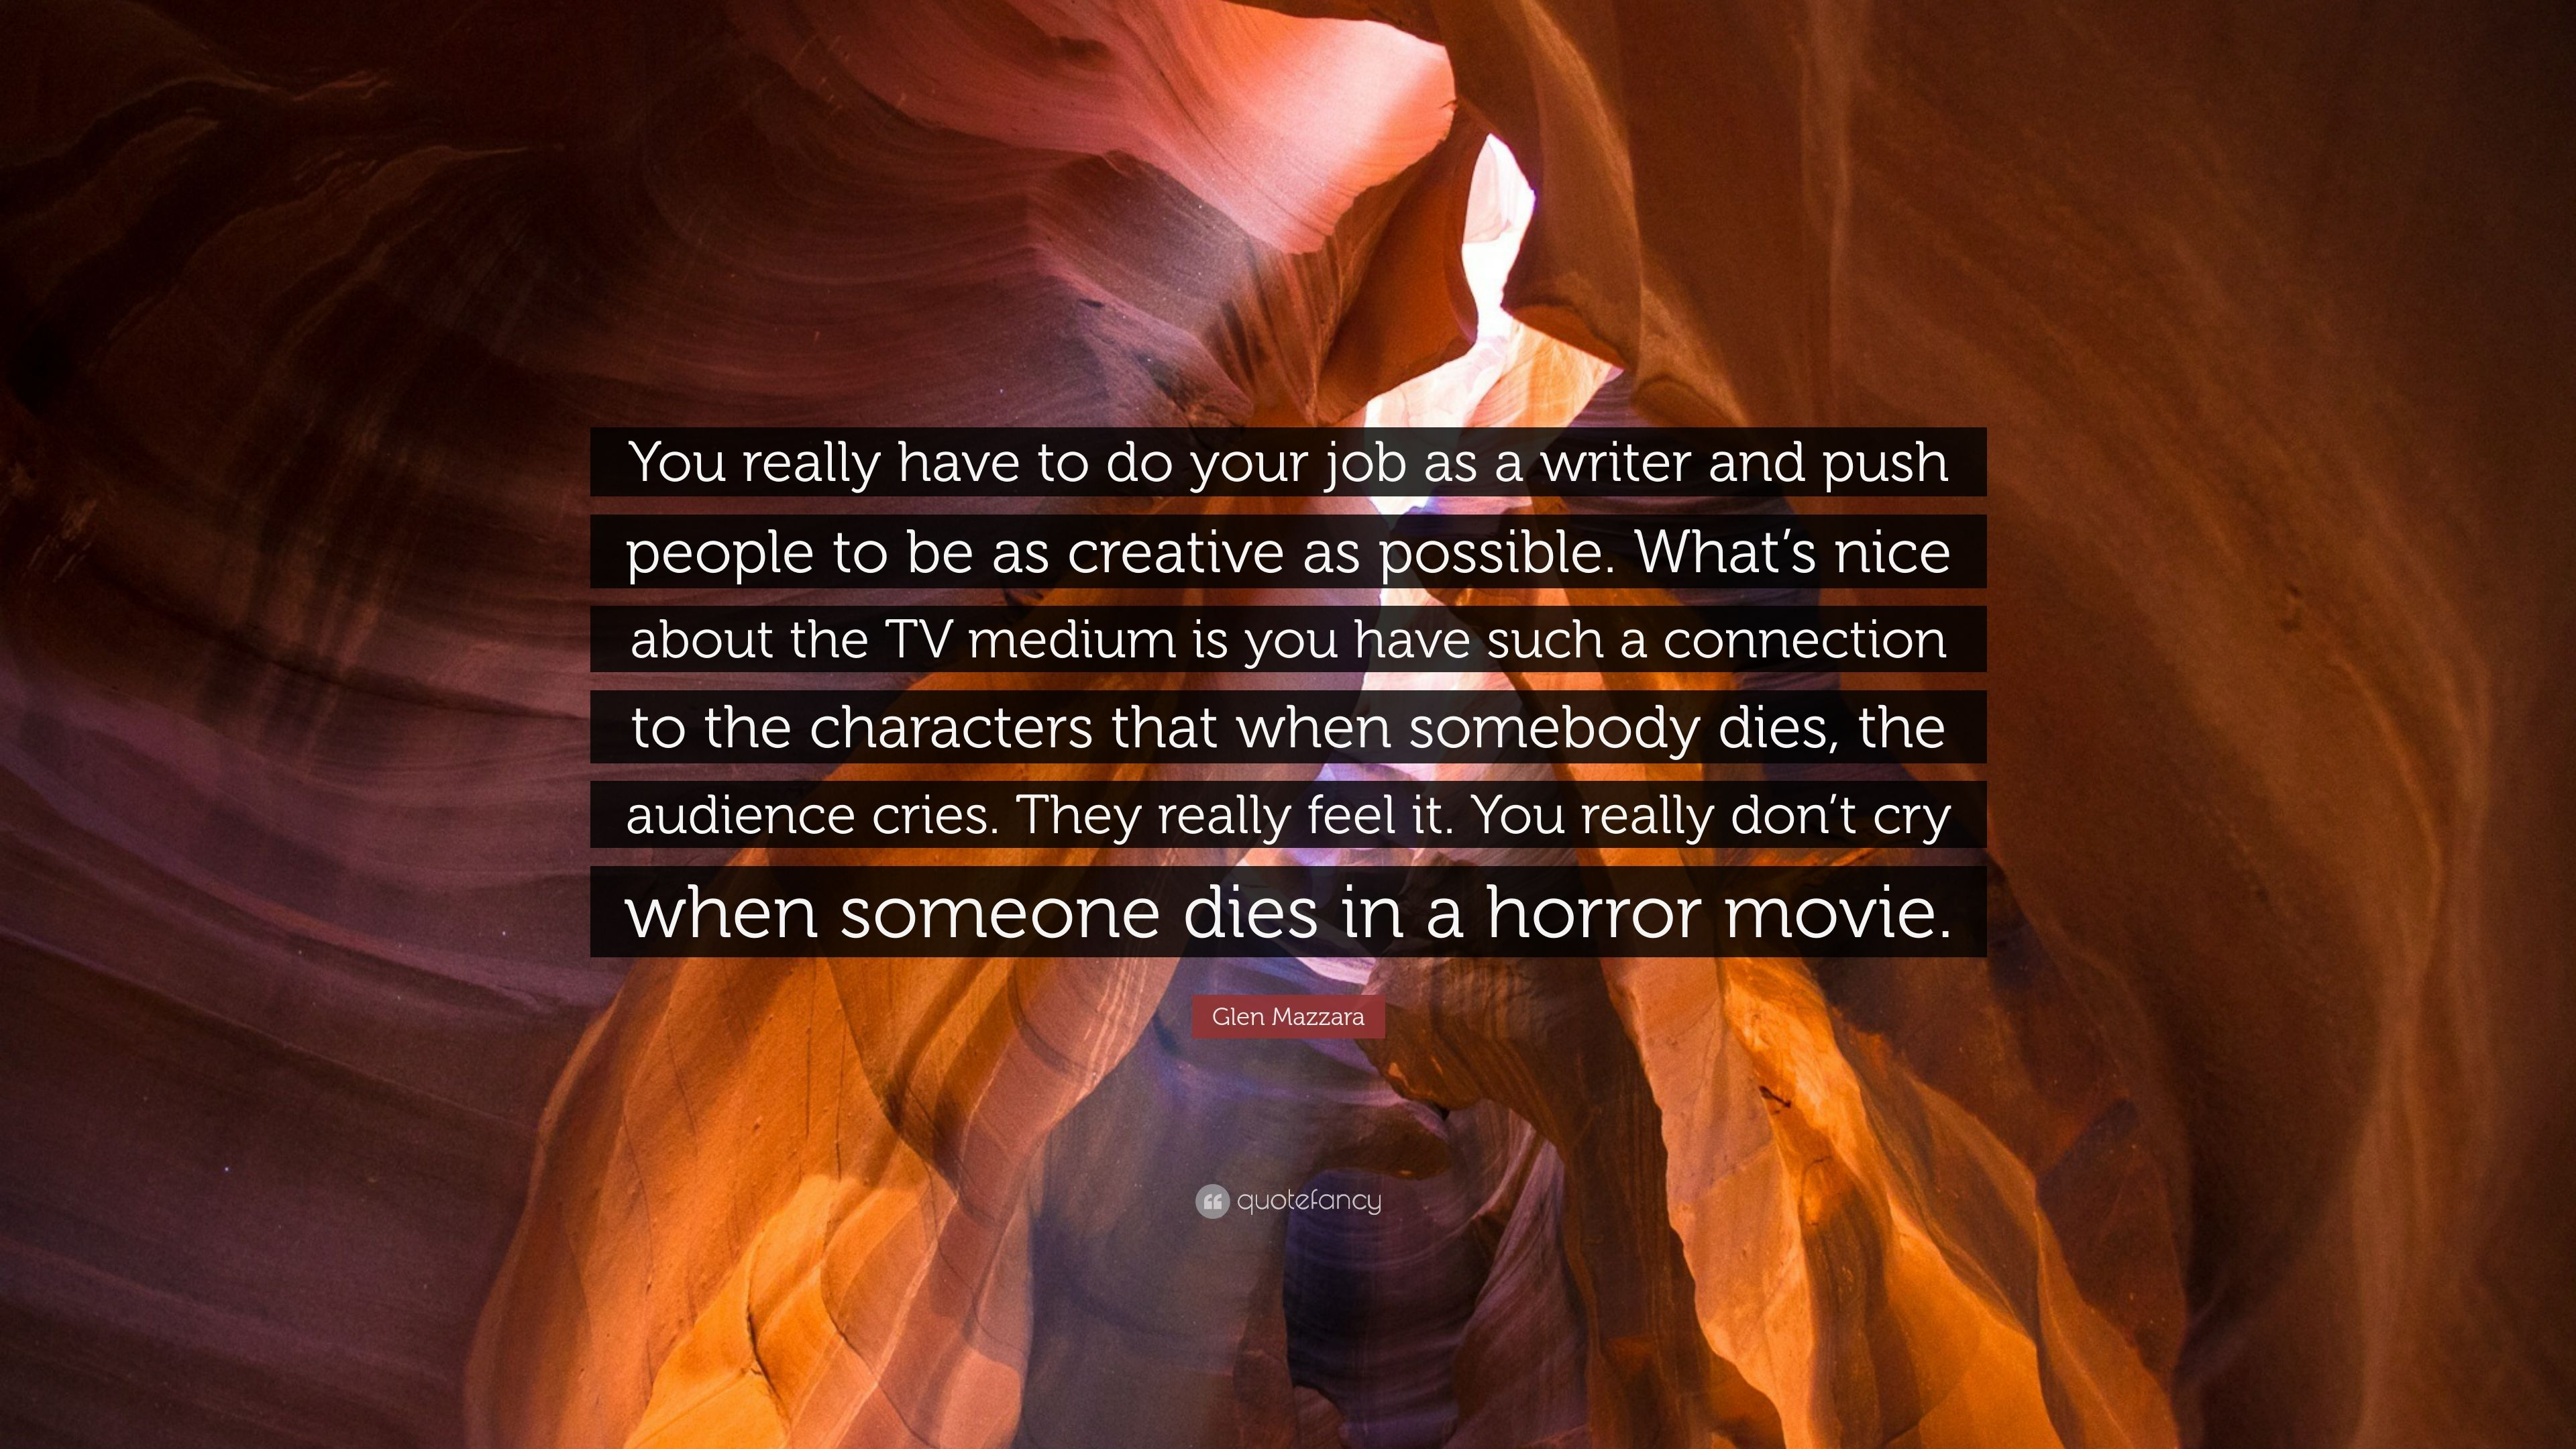 glen mazzara quote ldquo you really have to do your job as a writer glen mazzara quote ldquoyou really have to do your job as a writer and